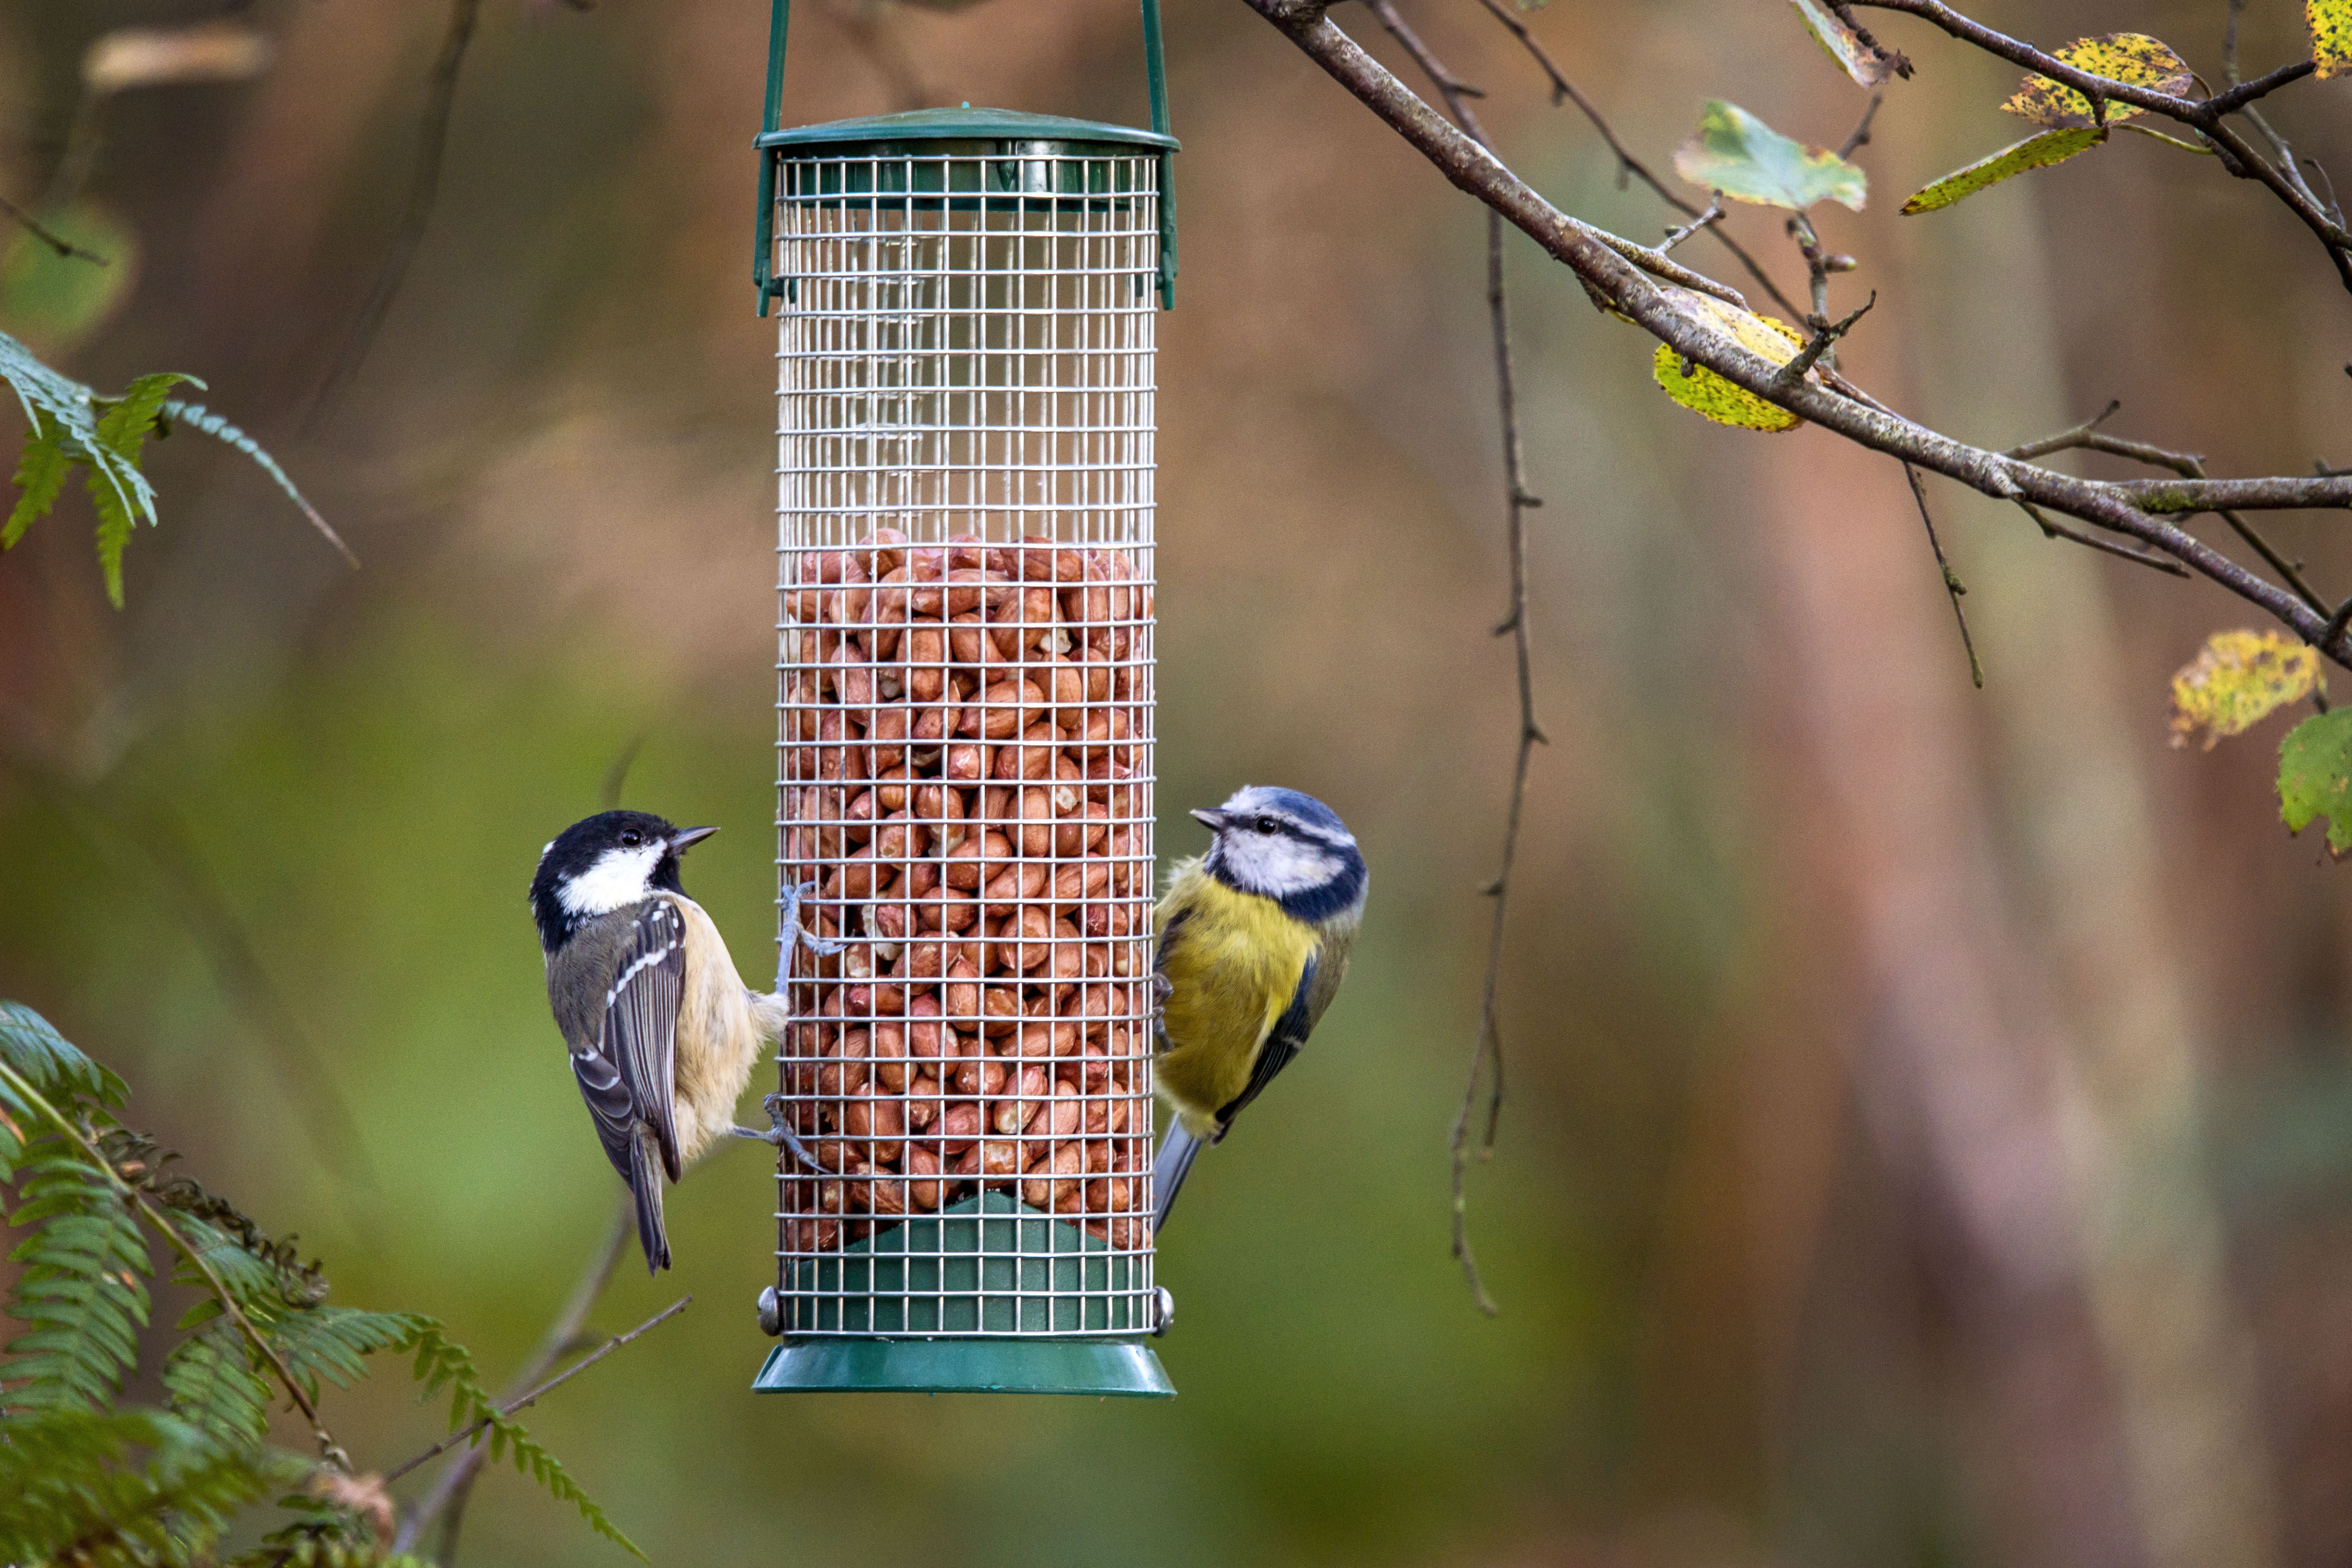 The Best Bird Feeders for Your Backyard